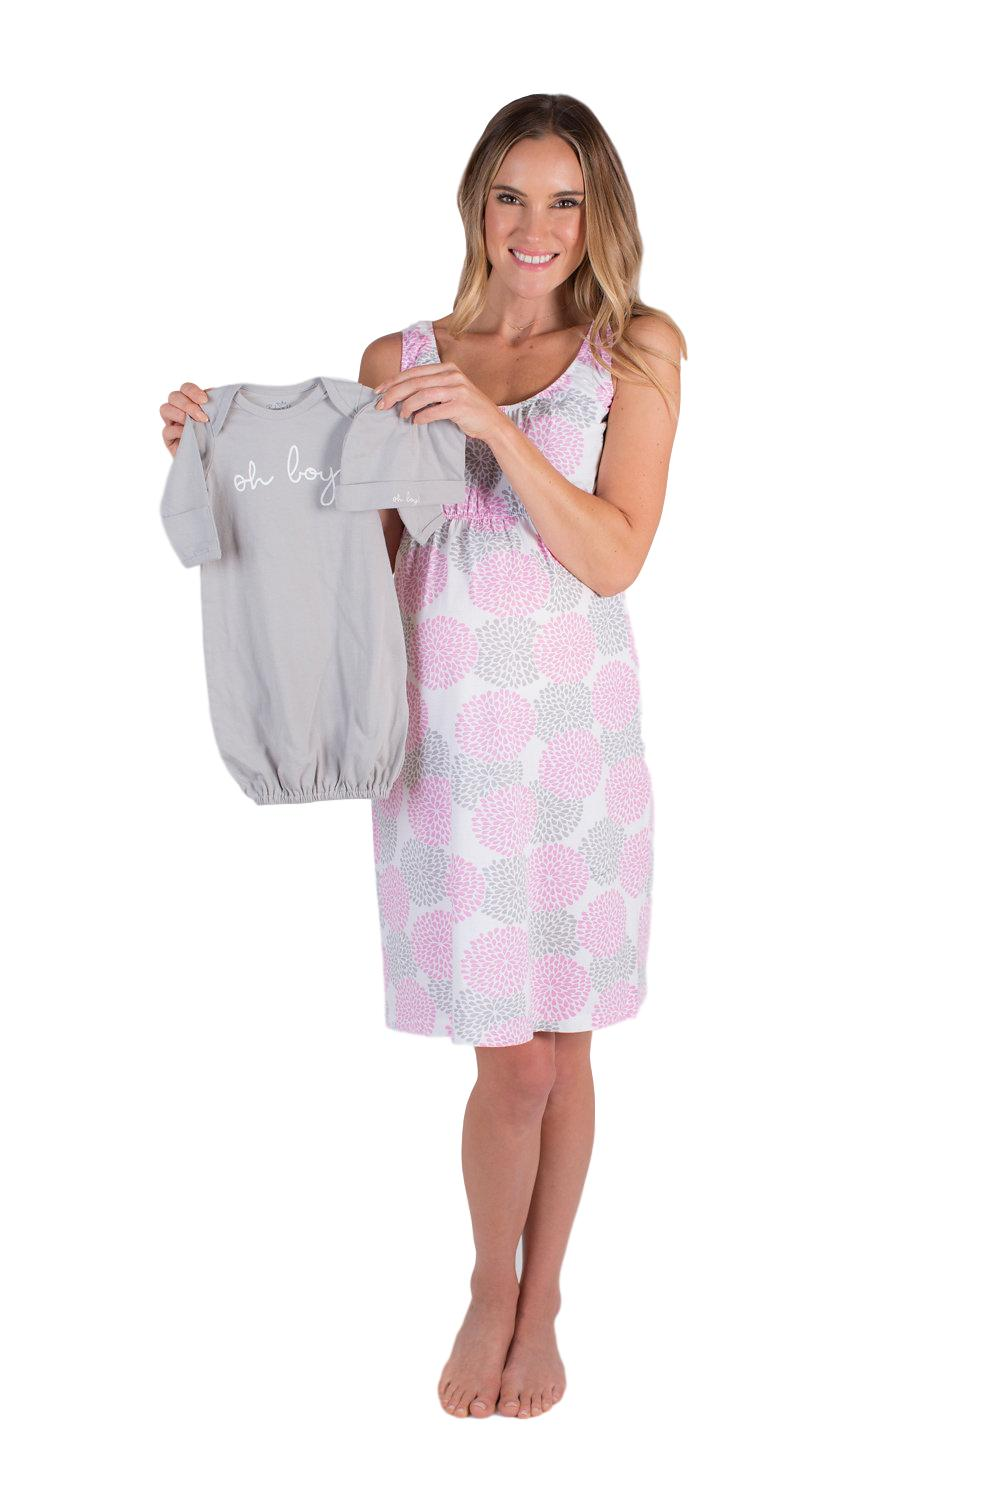 Lilly Sleeveless Nursing Nightgown with matching Receiving Gown Oh Boy! Set